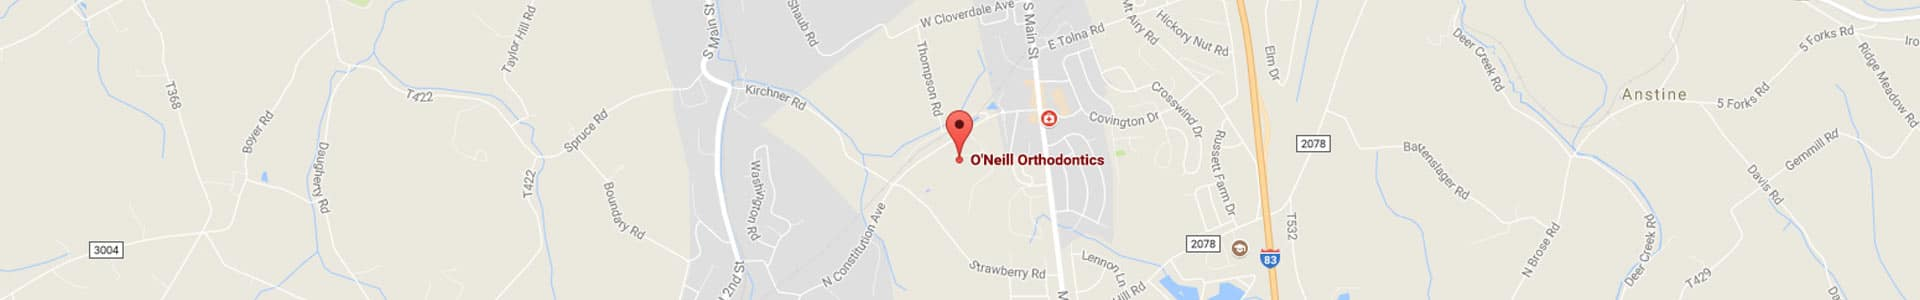 New Freedom Map 2 O'Neill Orthodontics New Freedom, PA